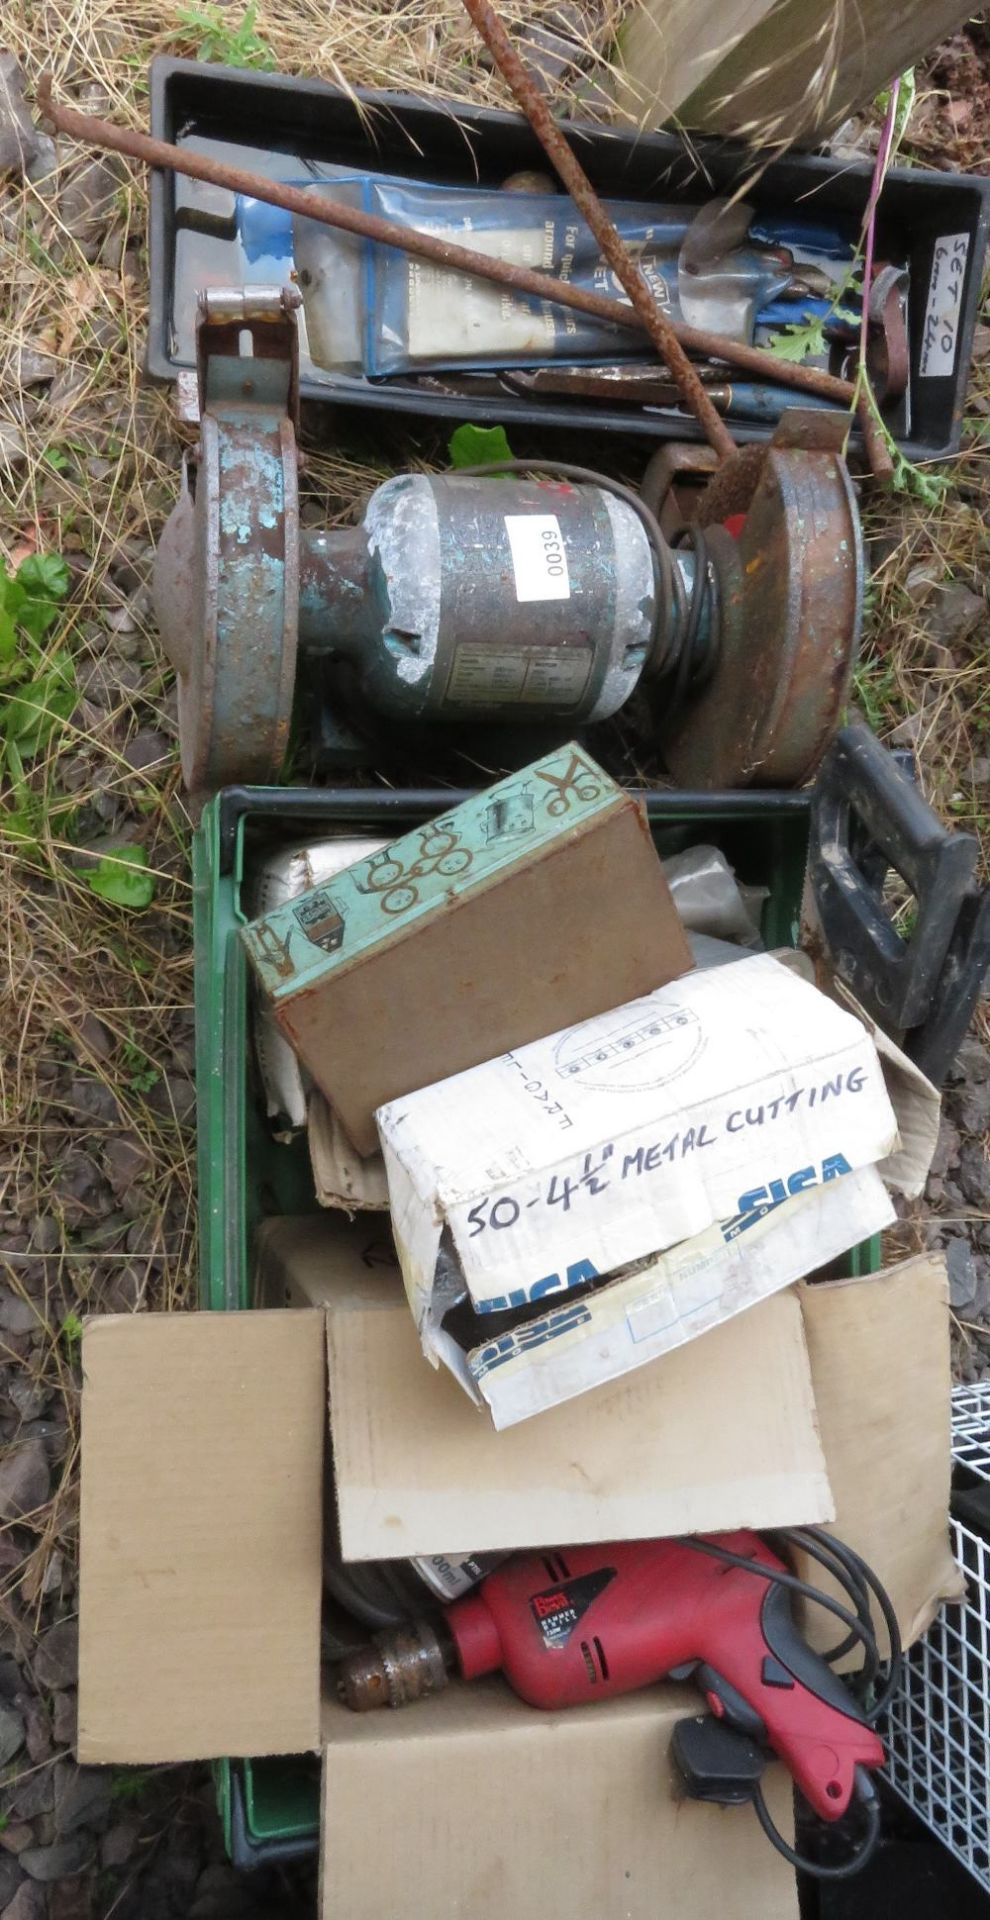 Lot 39 - Bench grinder plus box of assorted tools and equipment